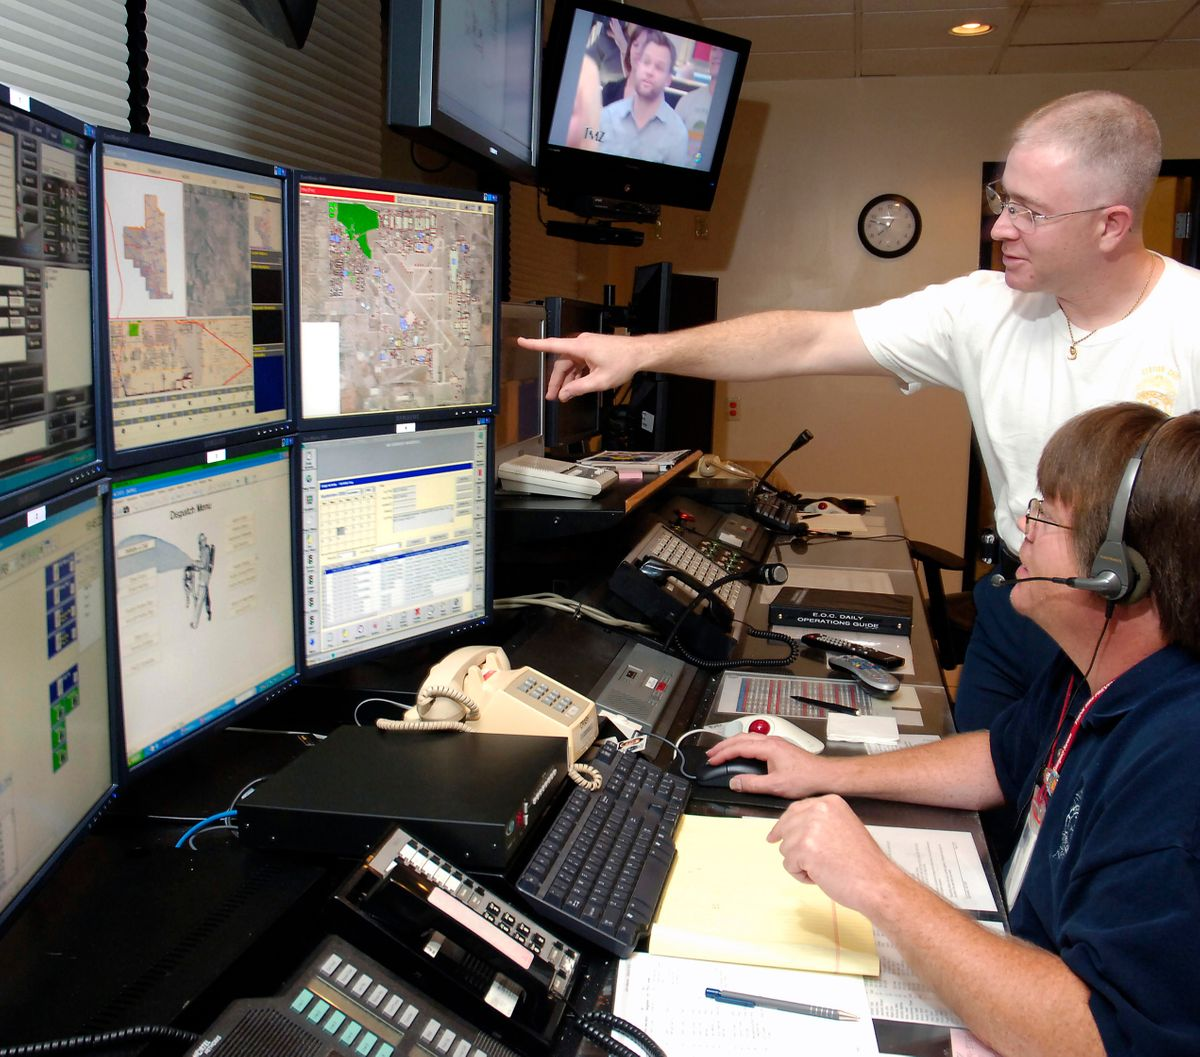 Future-proofing 911 call centers